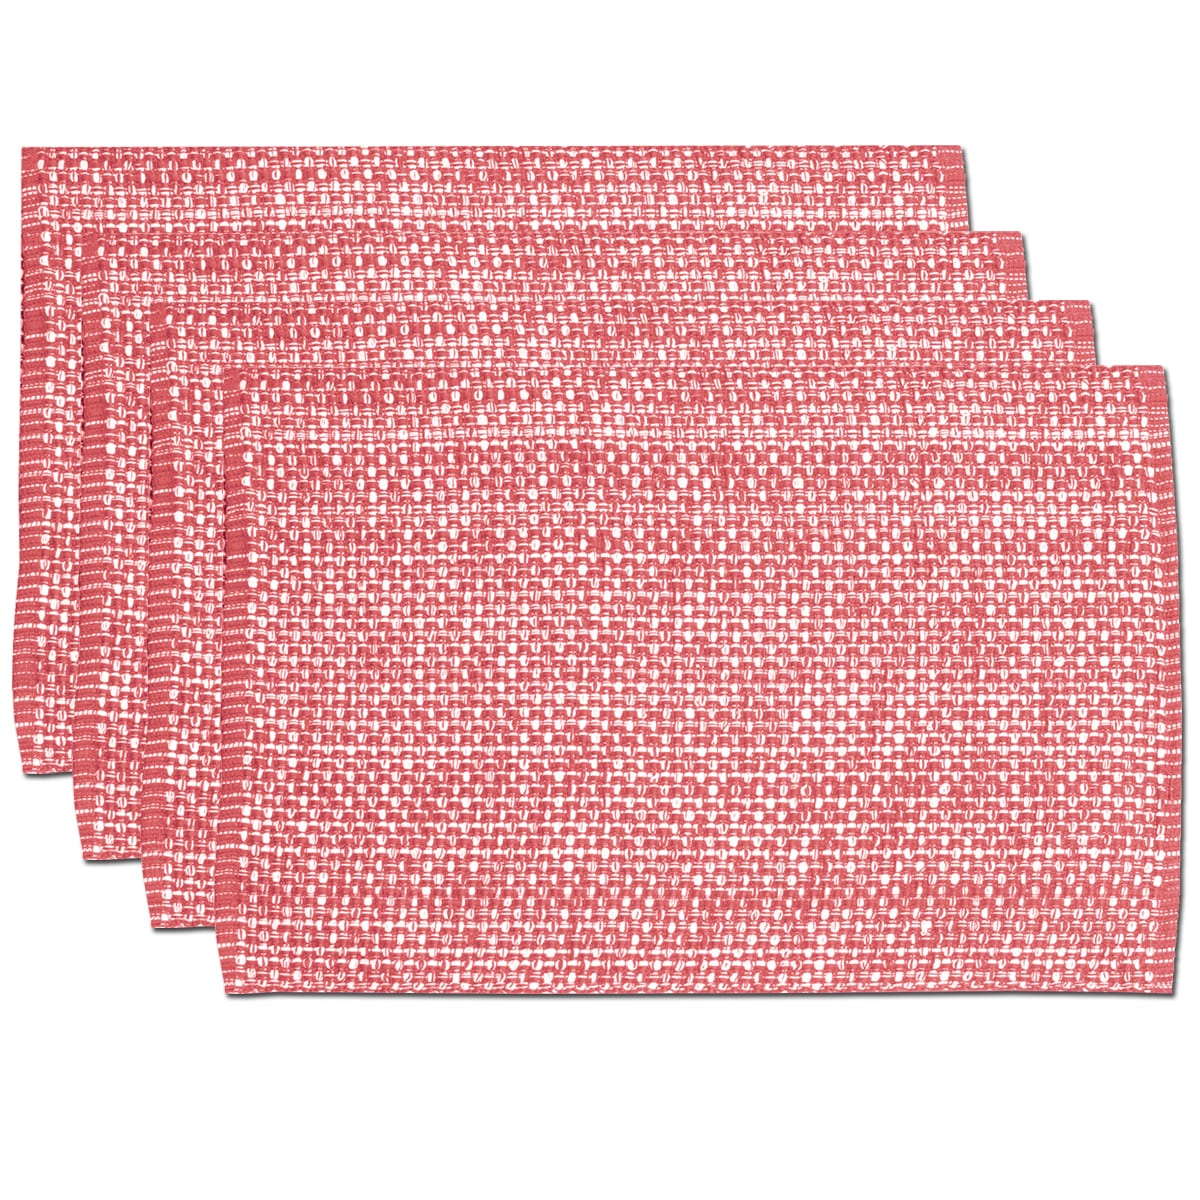 Pink Cotton Two-tone Placemats (Set of 2, 4 or 6) (Set of 4)